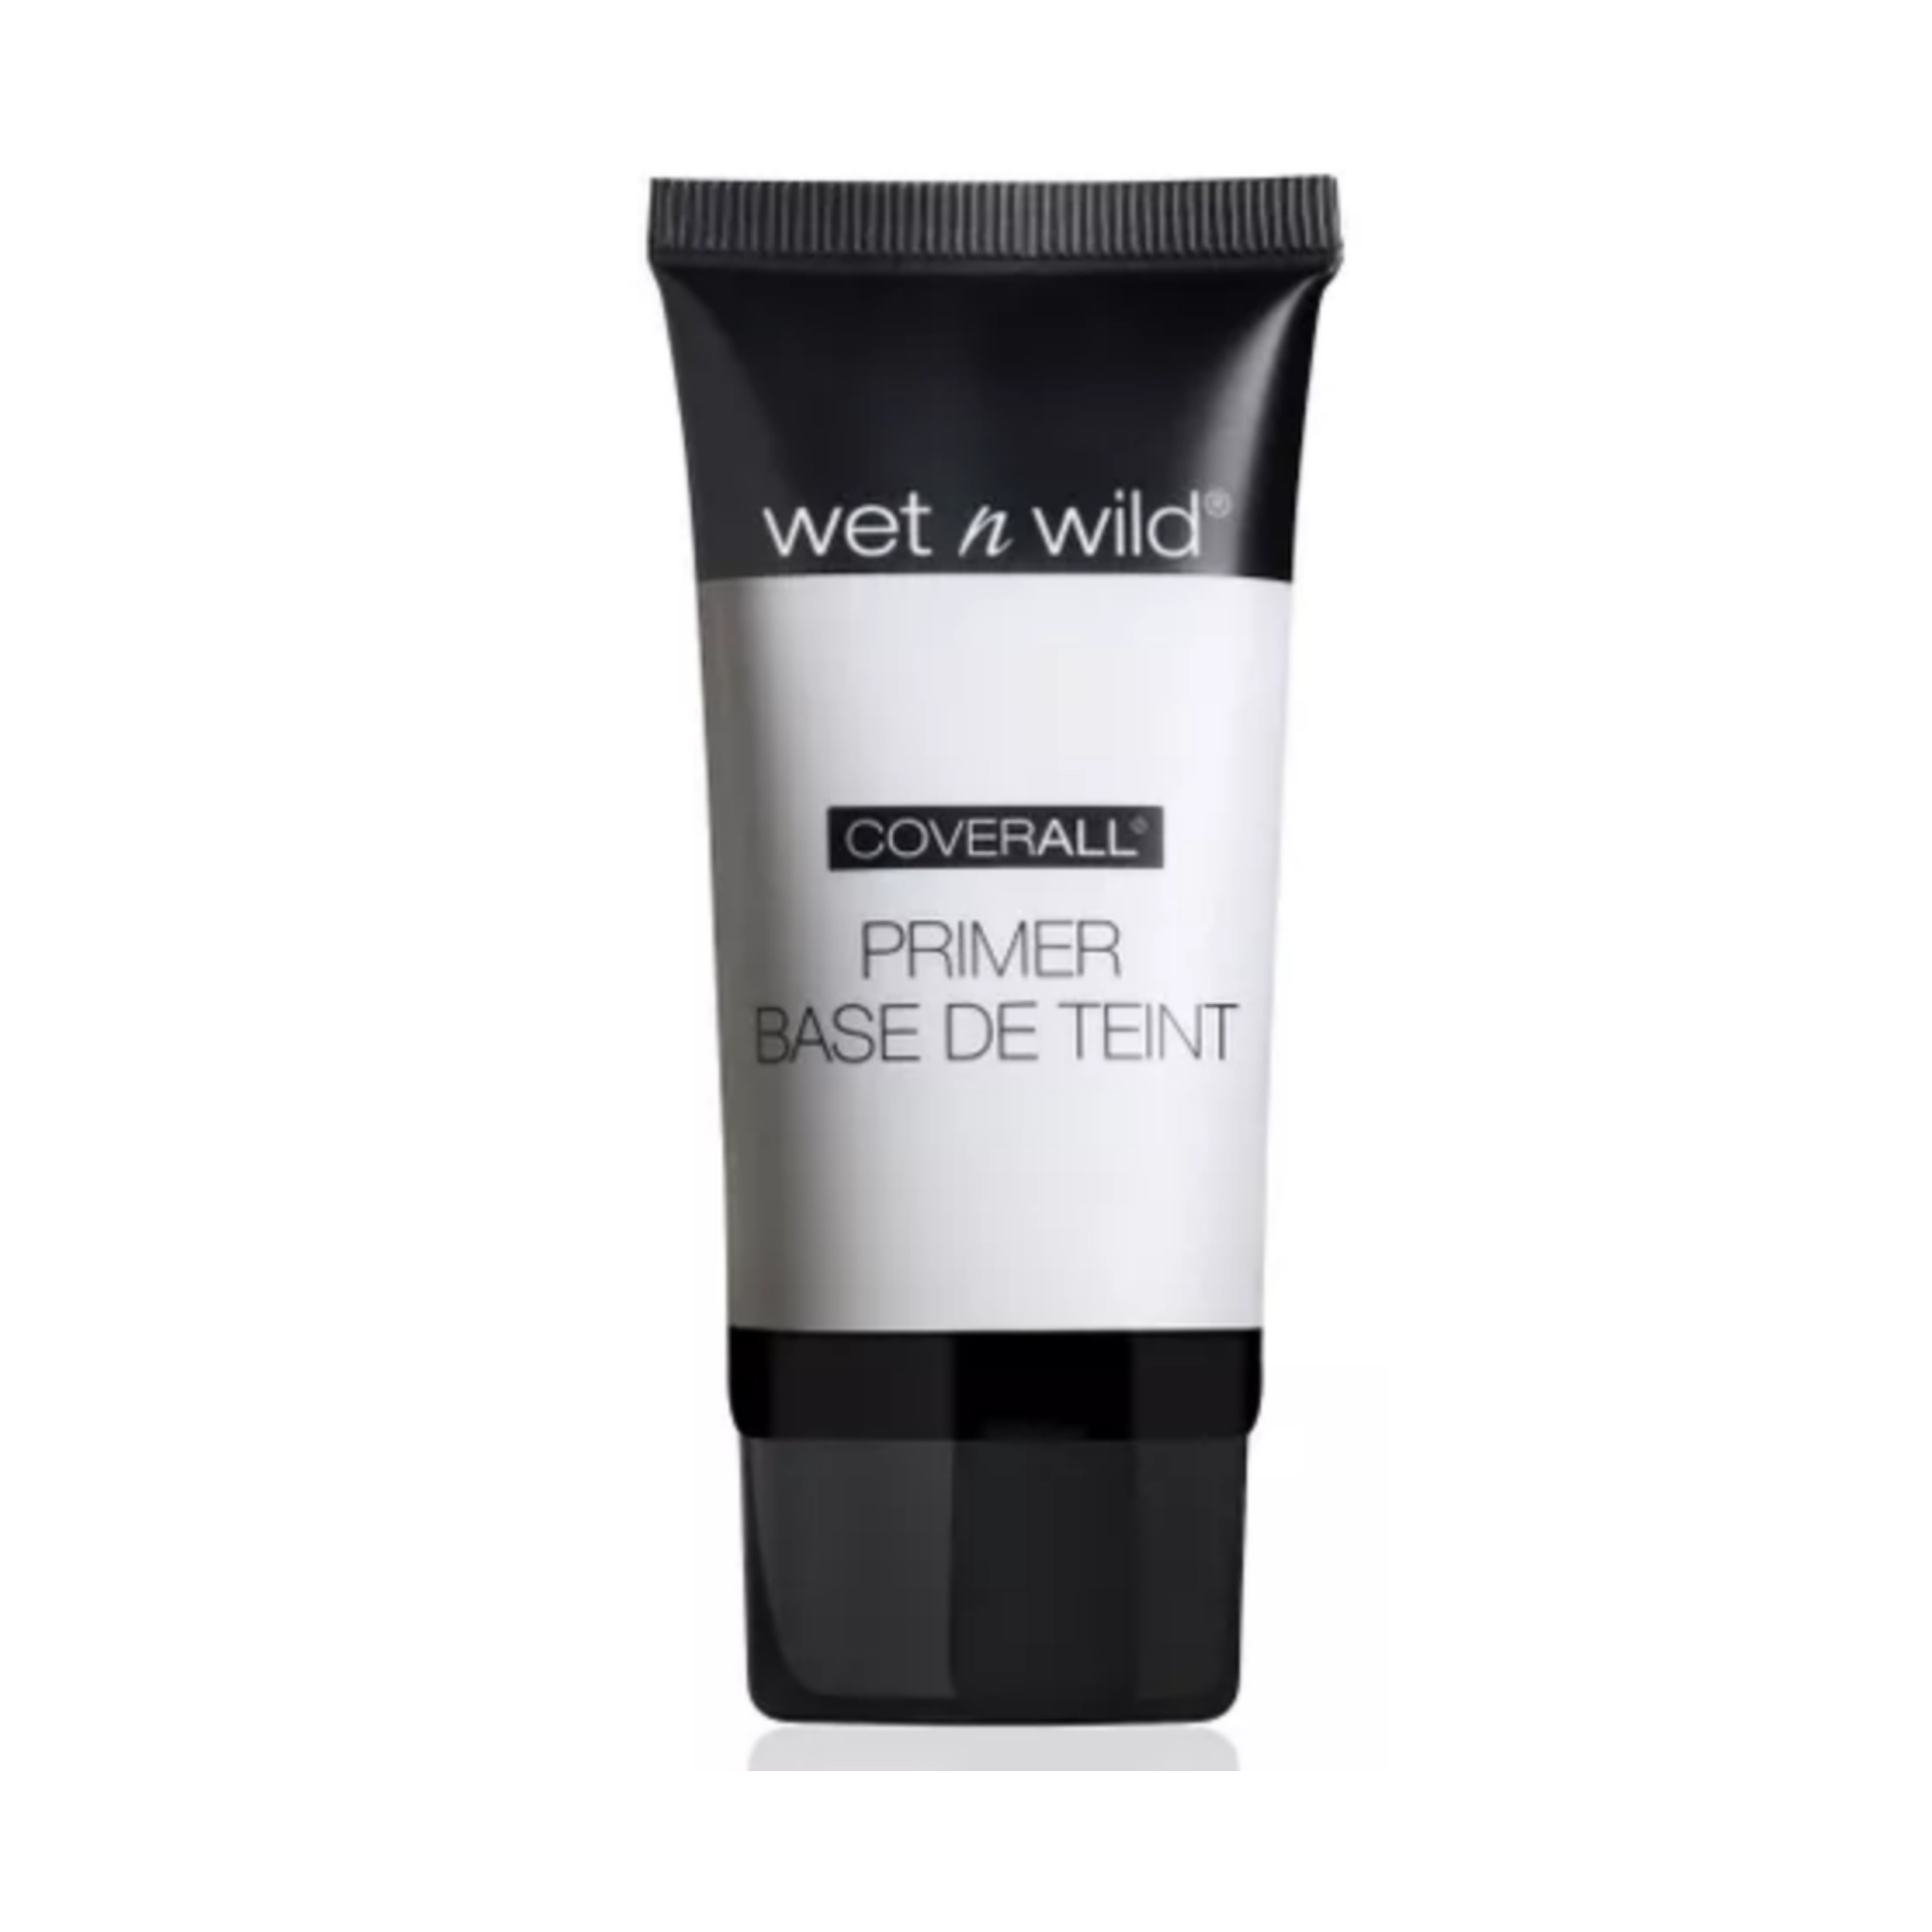 best drugstore makeup primer for oily skin and large pores on face - reviews